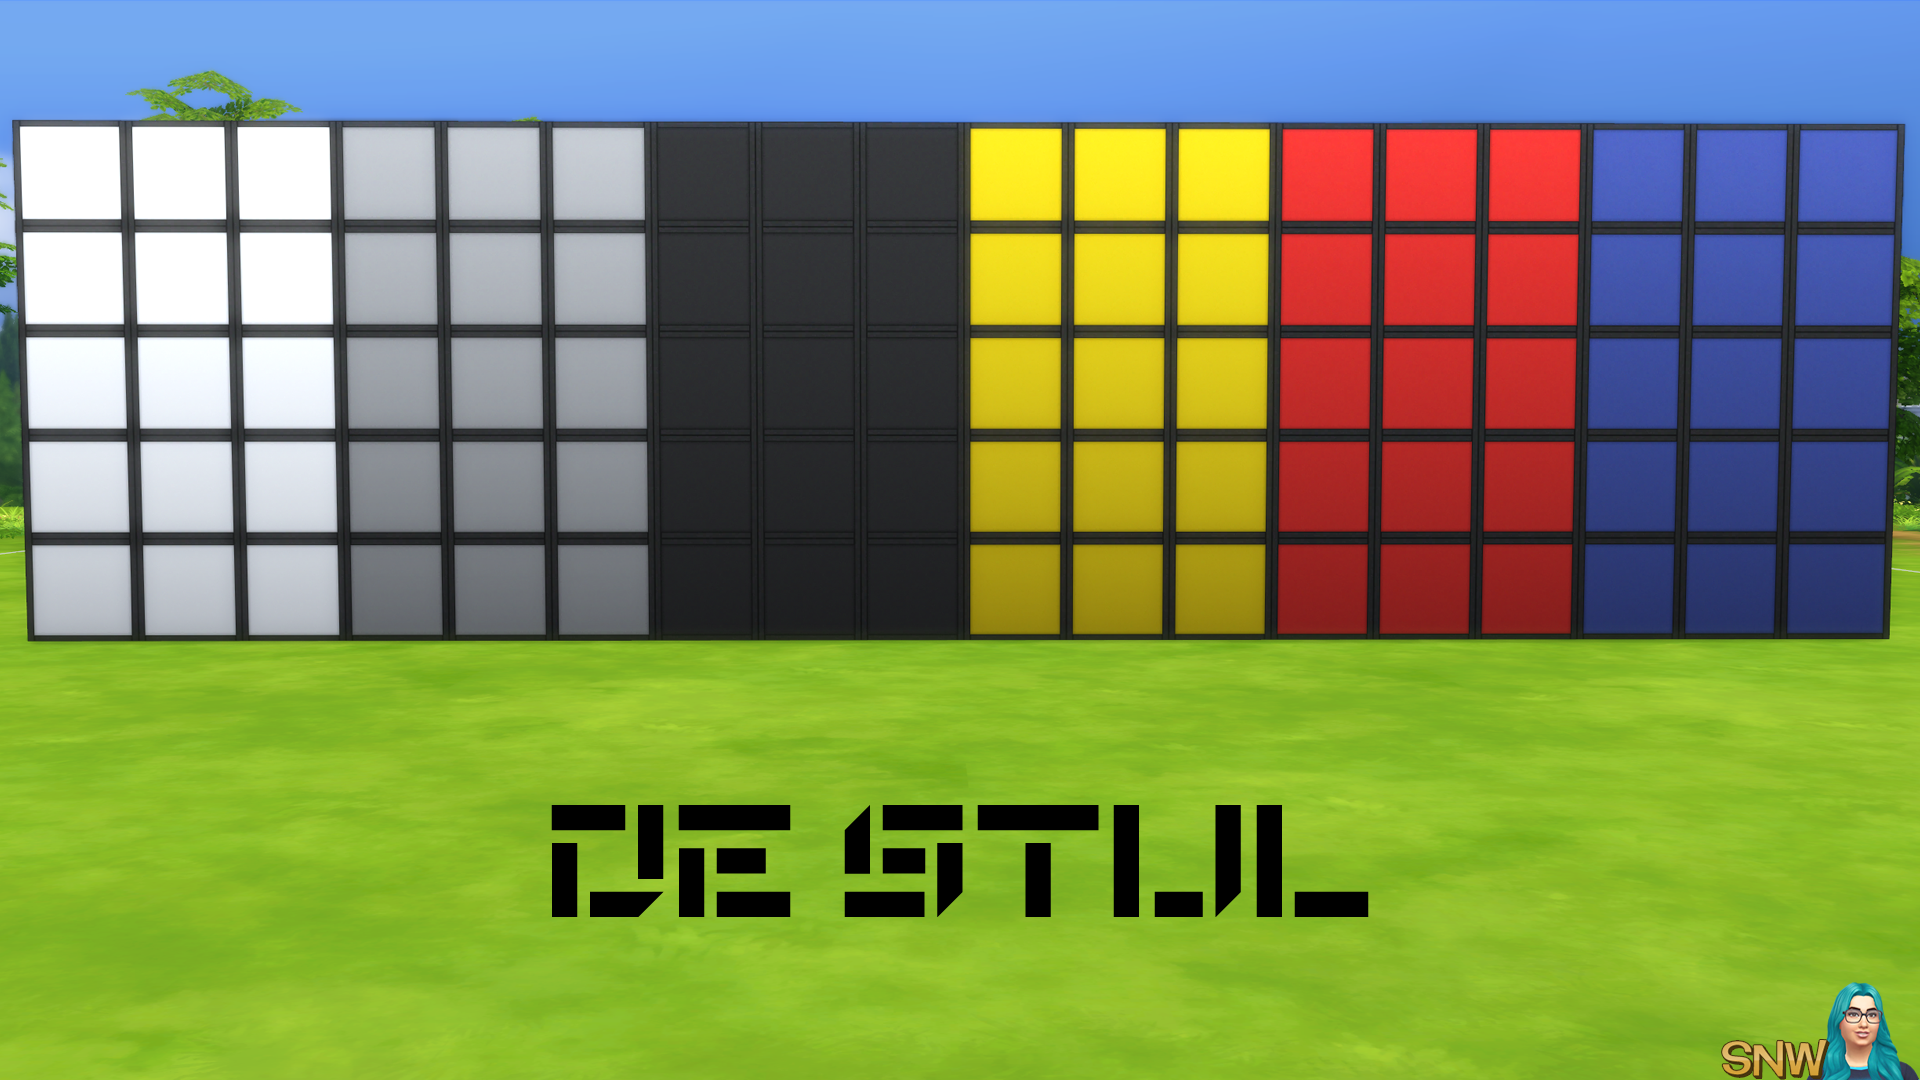 De Stijl Walls for The Sims 4